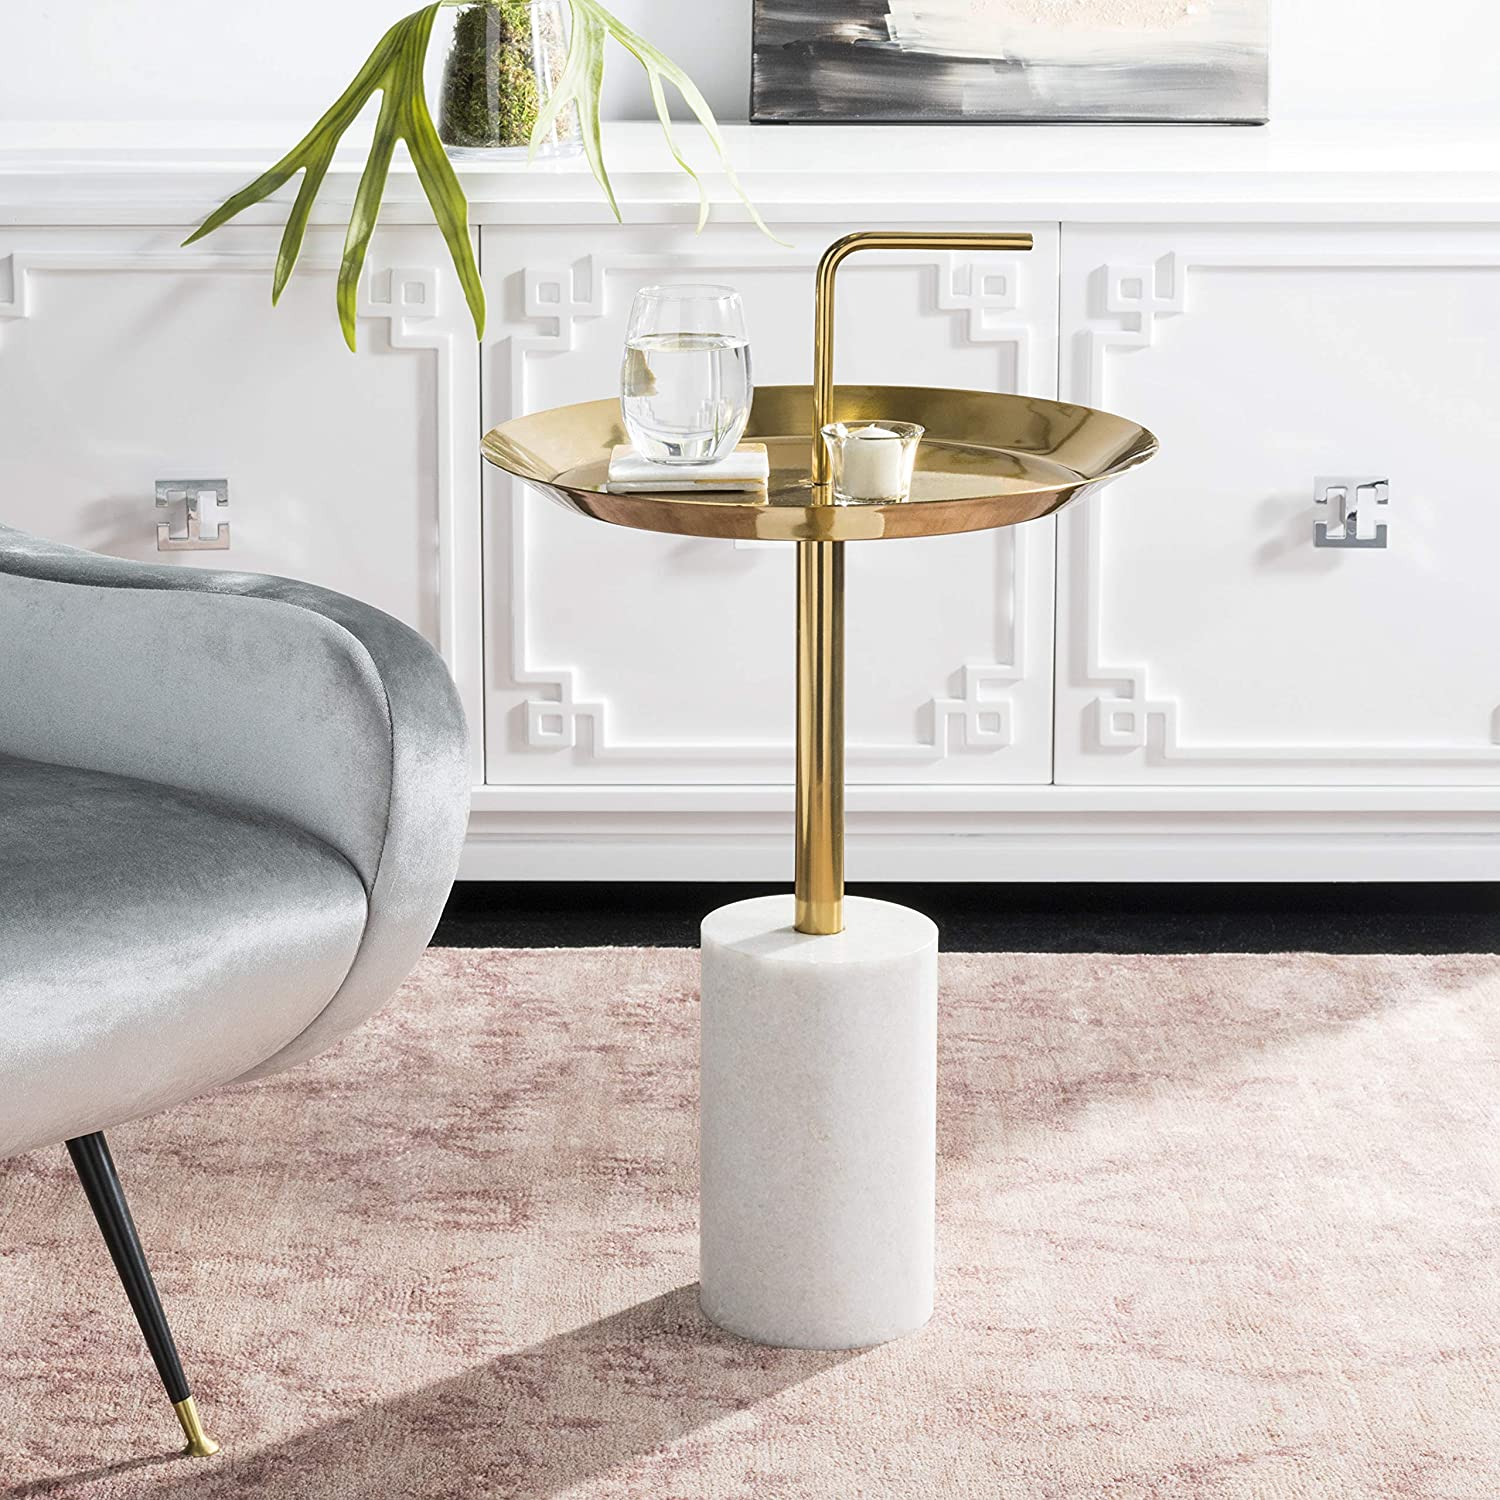 Safavieh Home Apollo Brass Handle Marble Side and Year-end gift Max 41% OFF Table